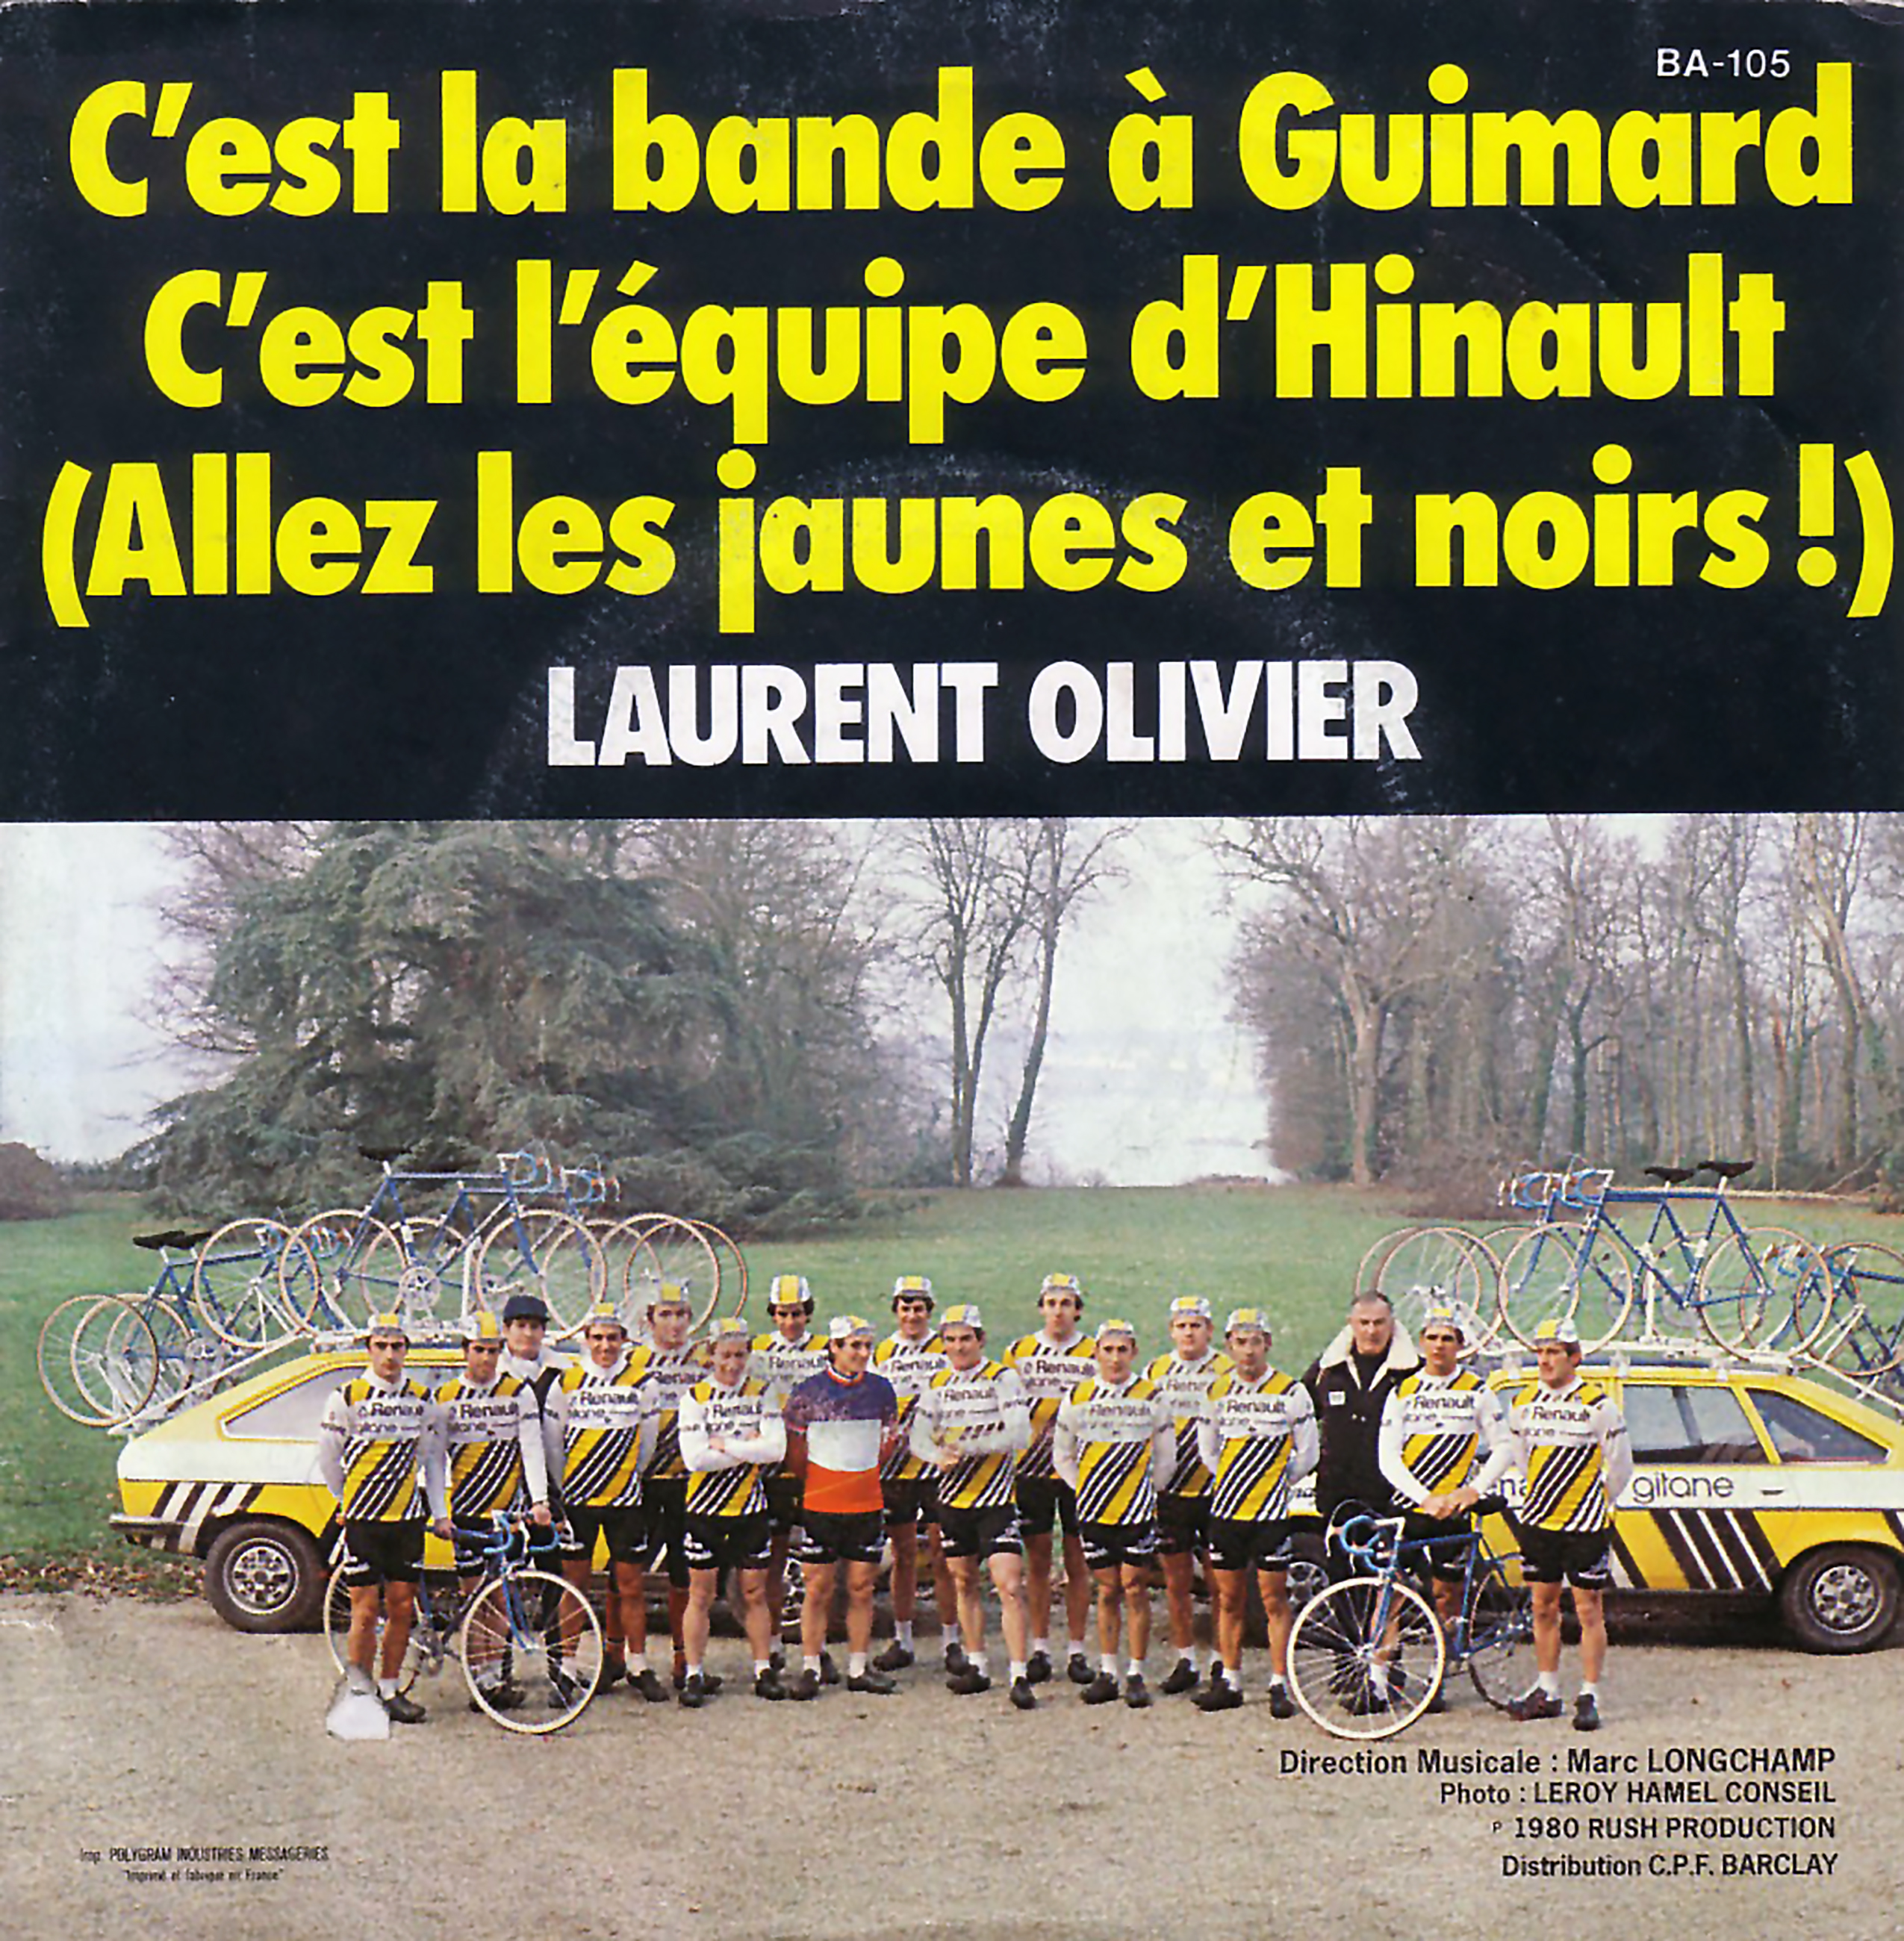 Laurent Olivier Single With the Renault Gitane Cycling Team and Bernard Hinault